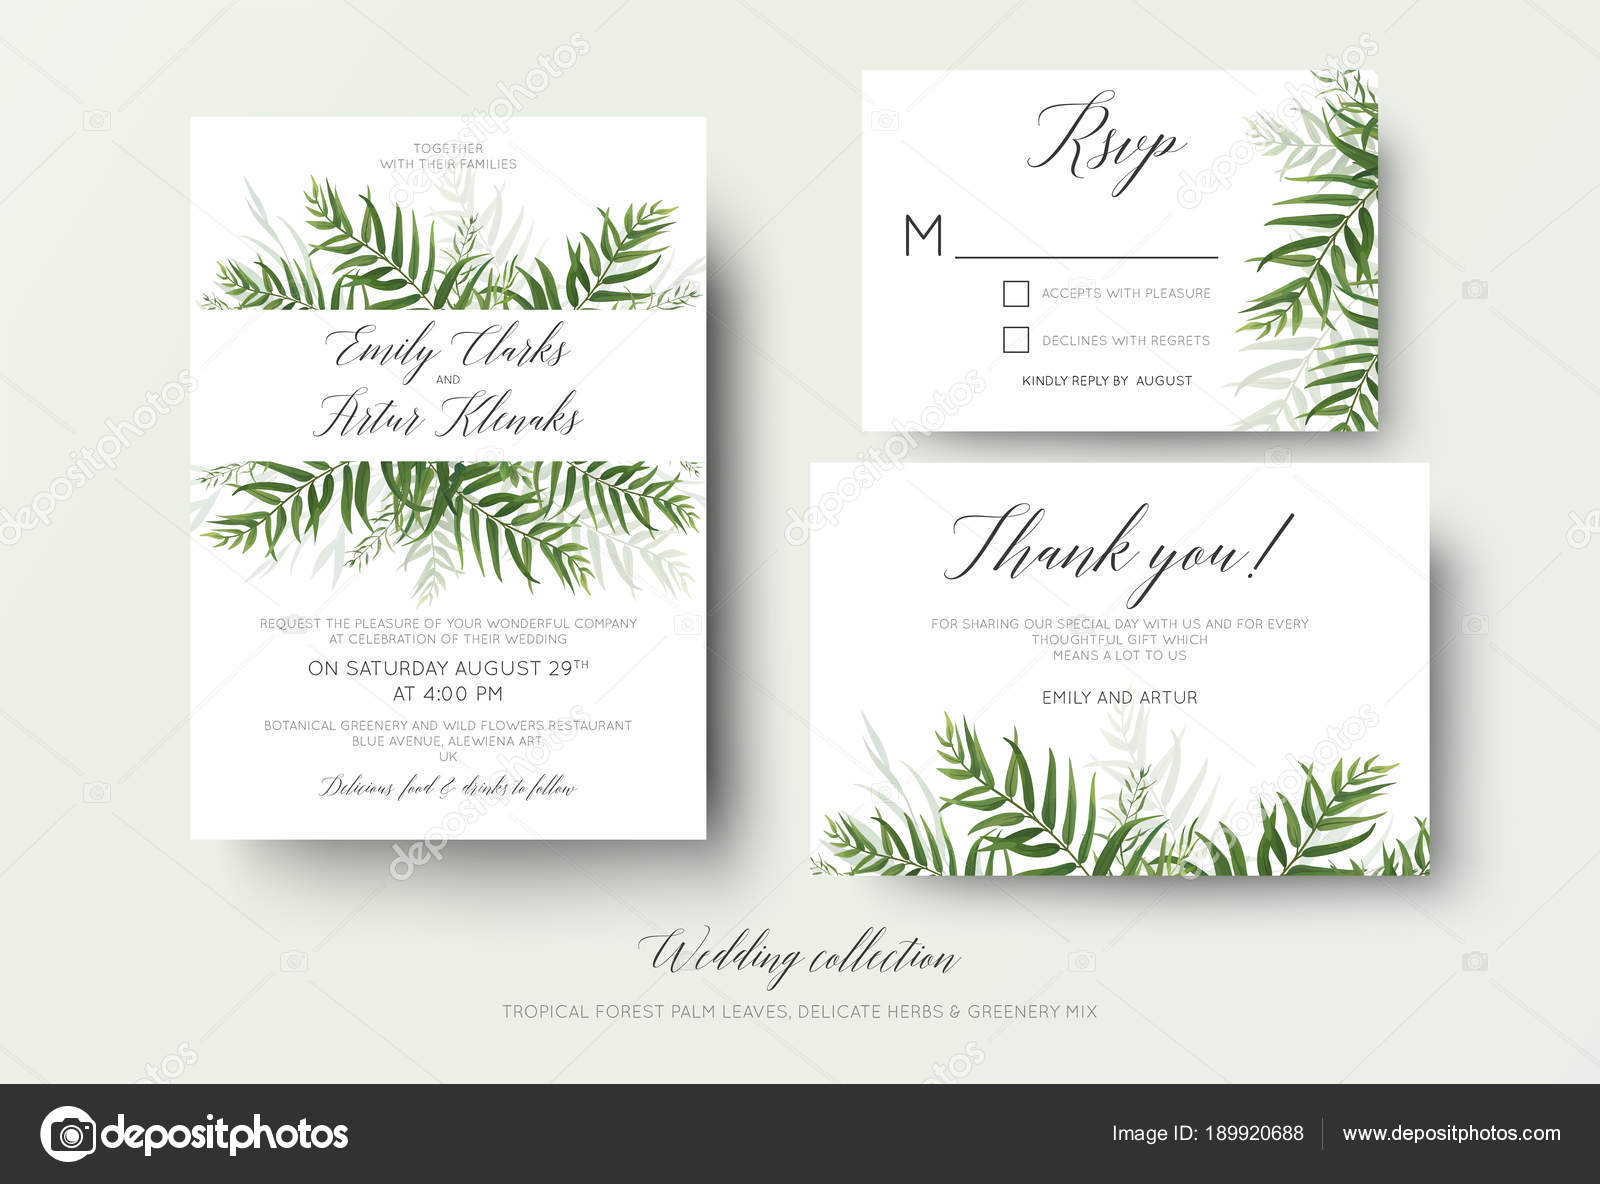 Wedding invitation, rsvp, thank you cards floral design with green ...